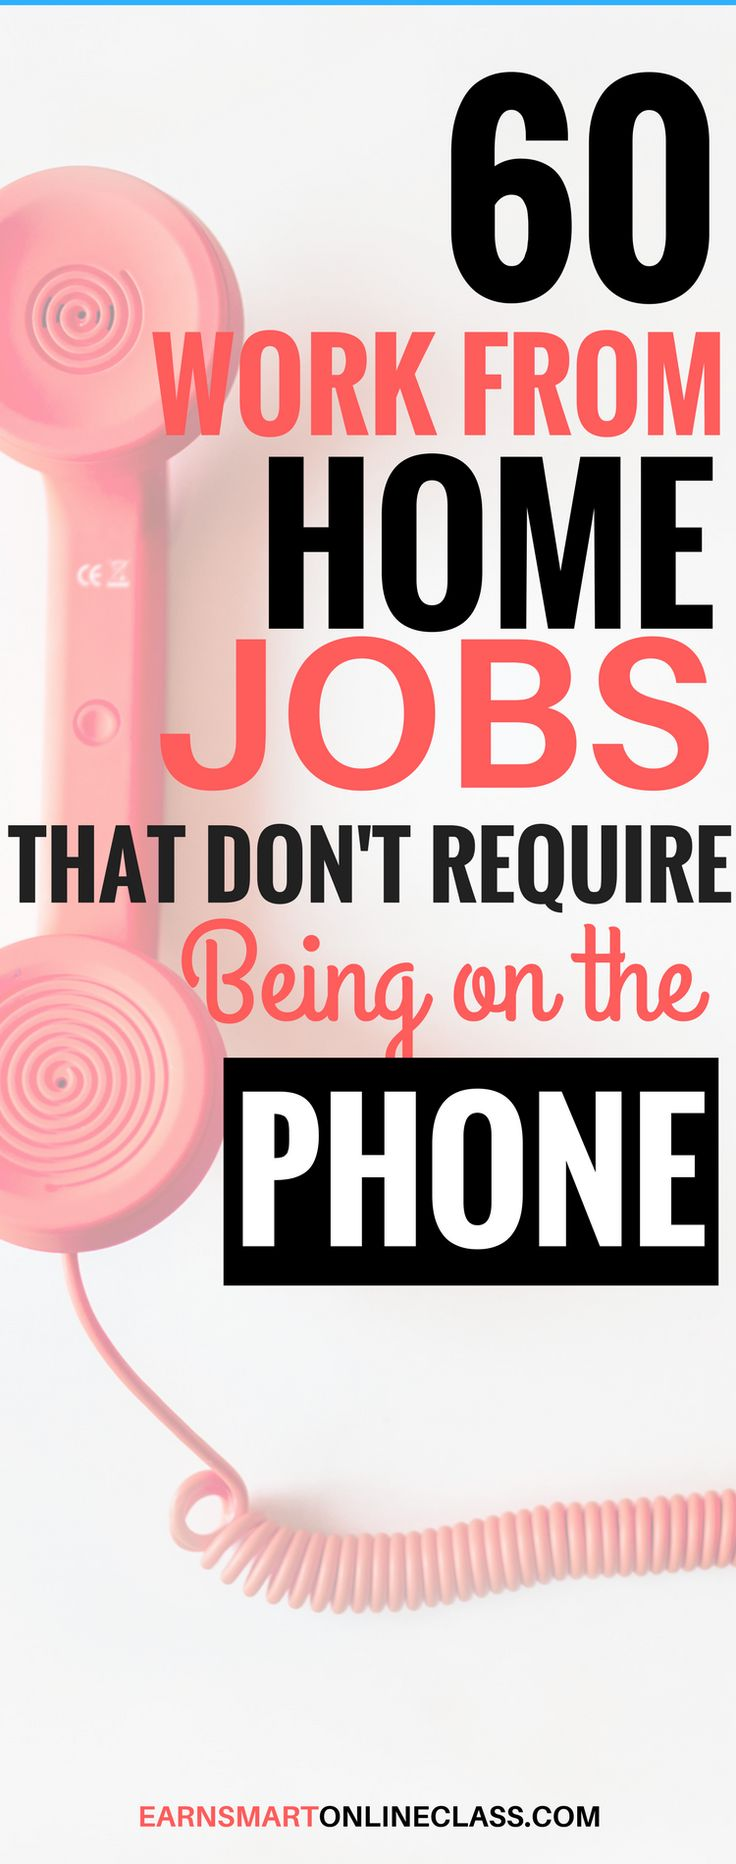 Non-phone work from home jobs| non-phone work-at-home jobs| non-phone jobs from home| non-phone work from home| non phone work from home jobs 2018